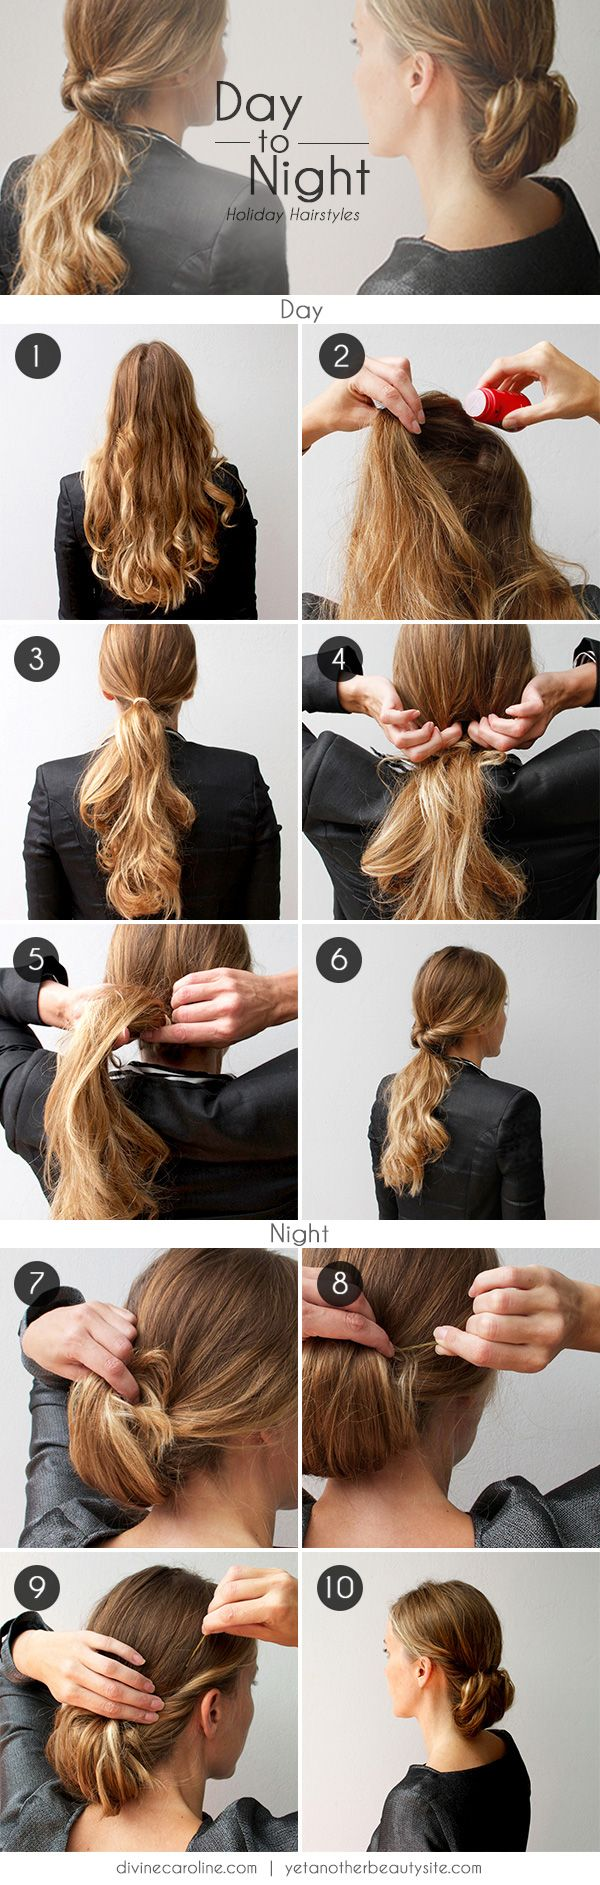 Easy Hairstyles On The Go Best 25 Night Hair Ideas Only On Pinterest Homecoming